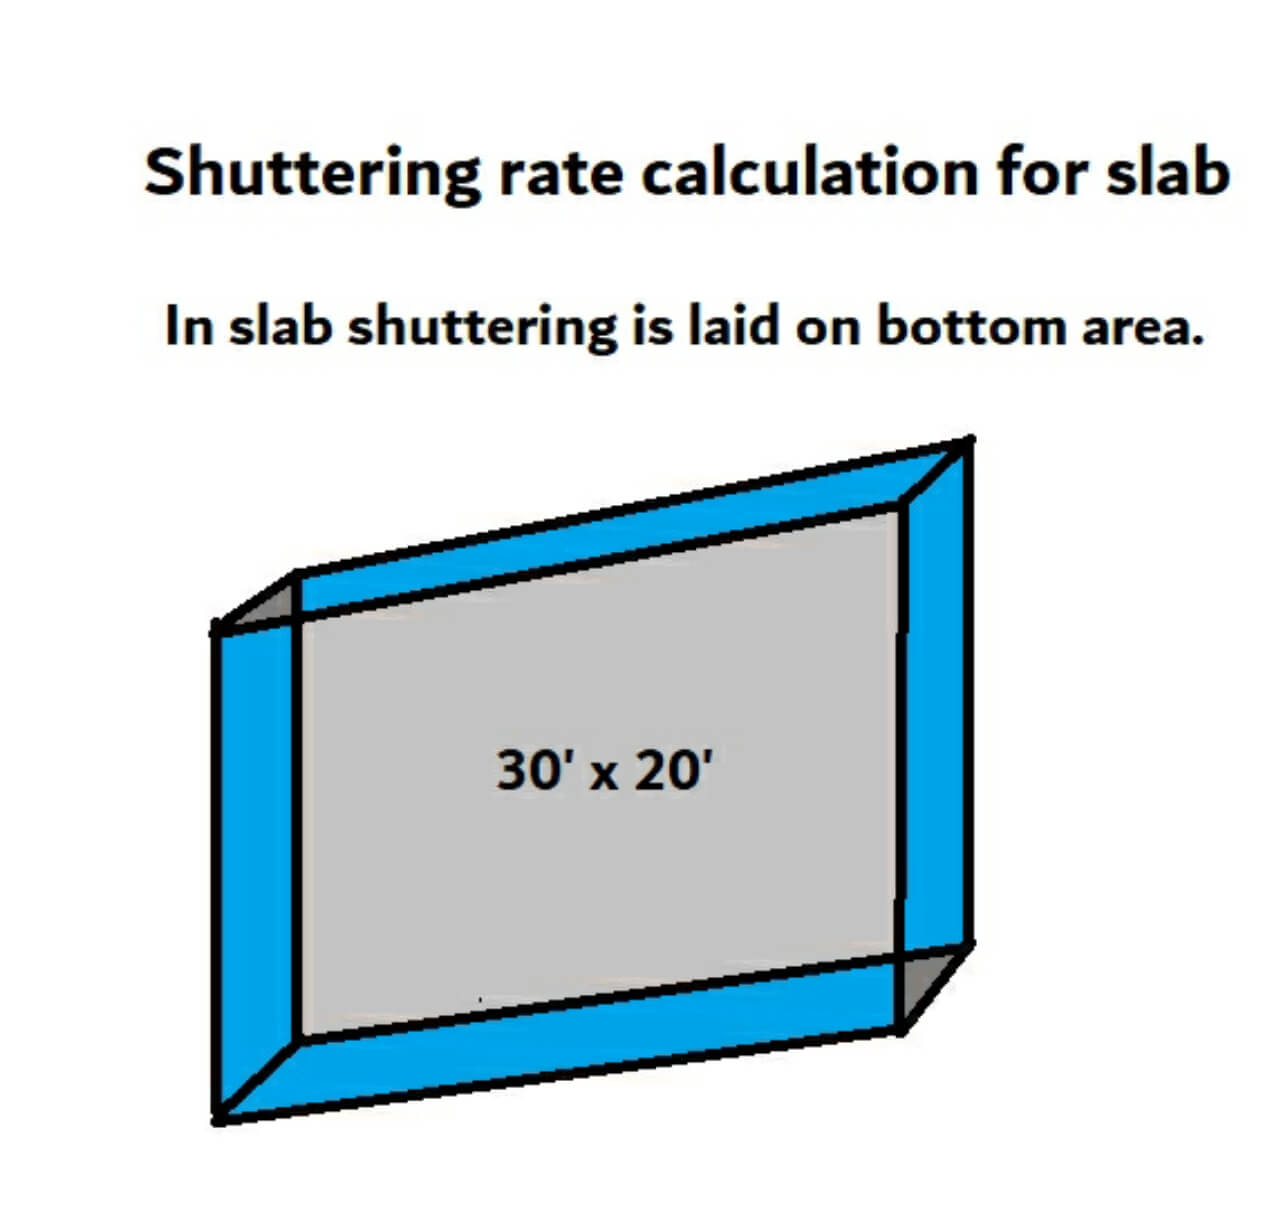 Shuttering rate/ cost calculation for slab